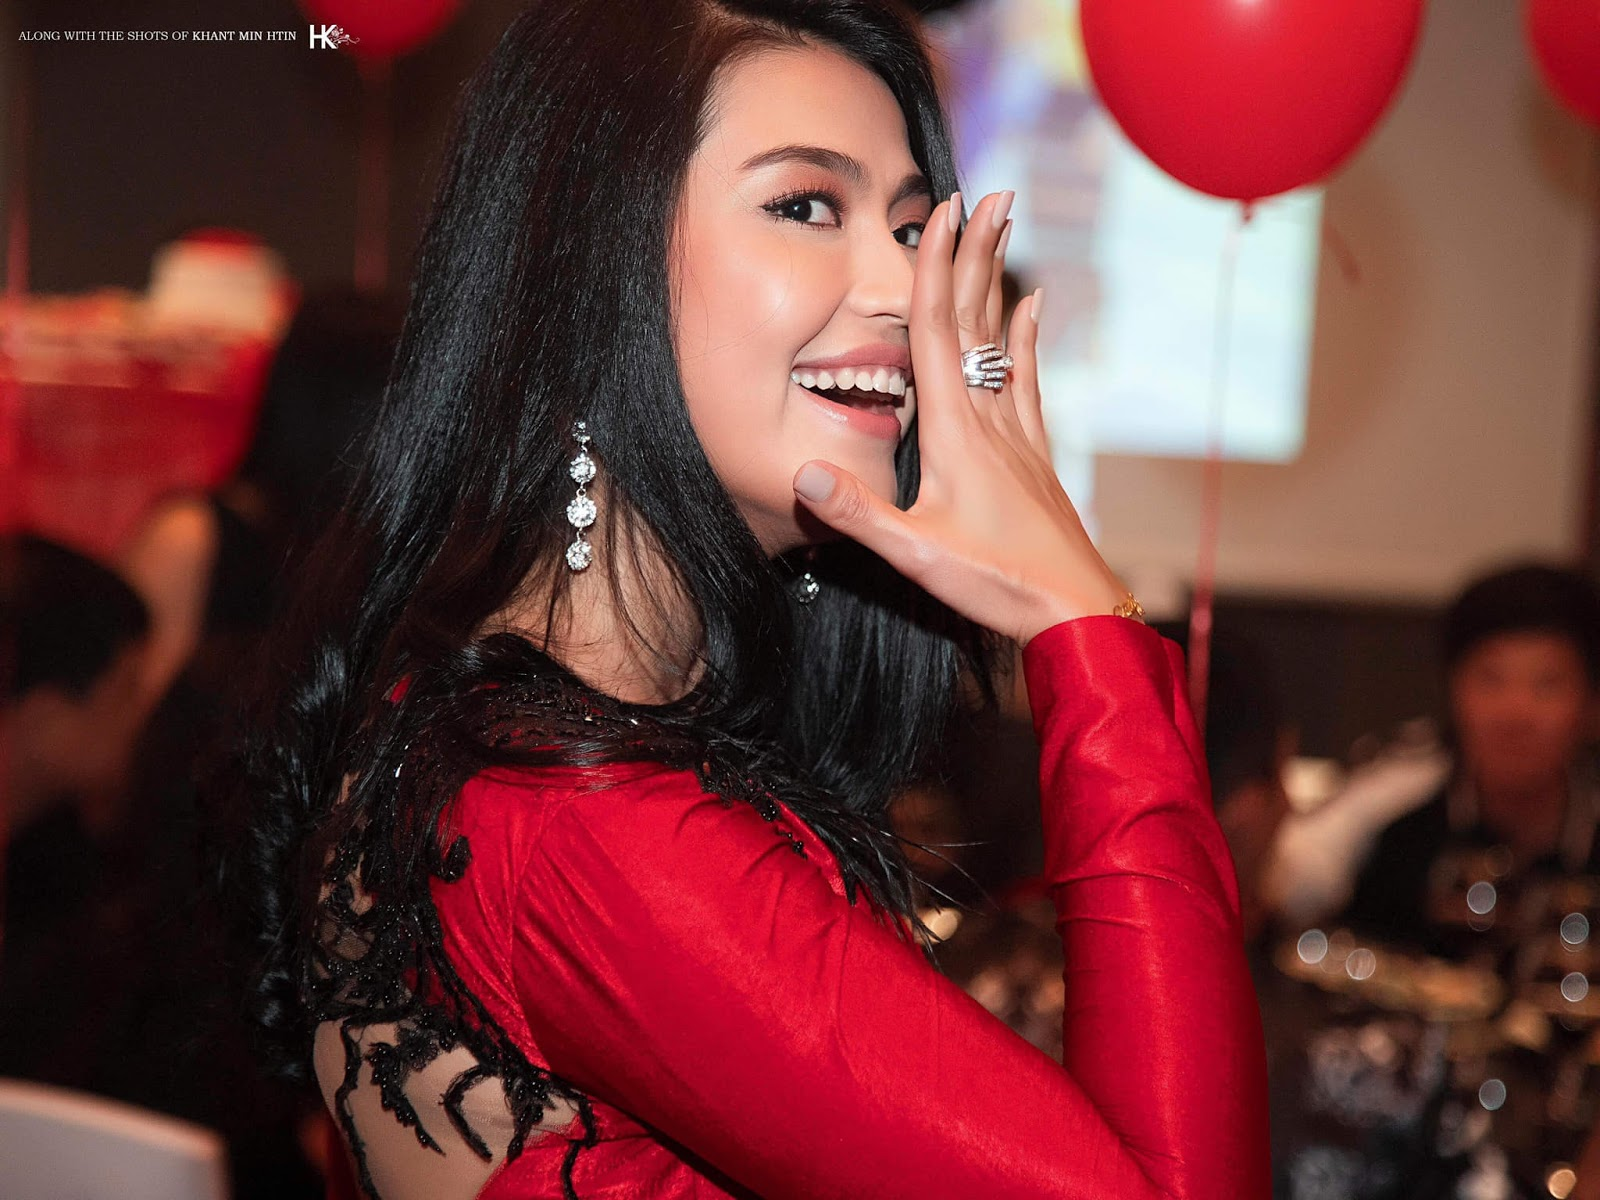 Happy Birthday Ei Chaw Po : Photos from Her Birthday Party